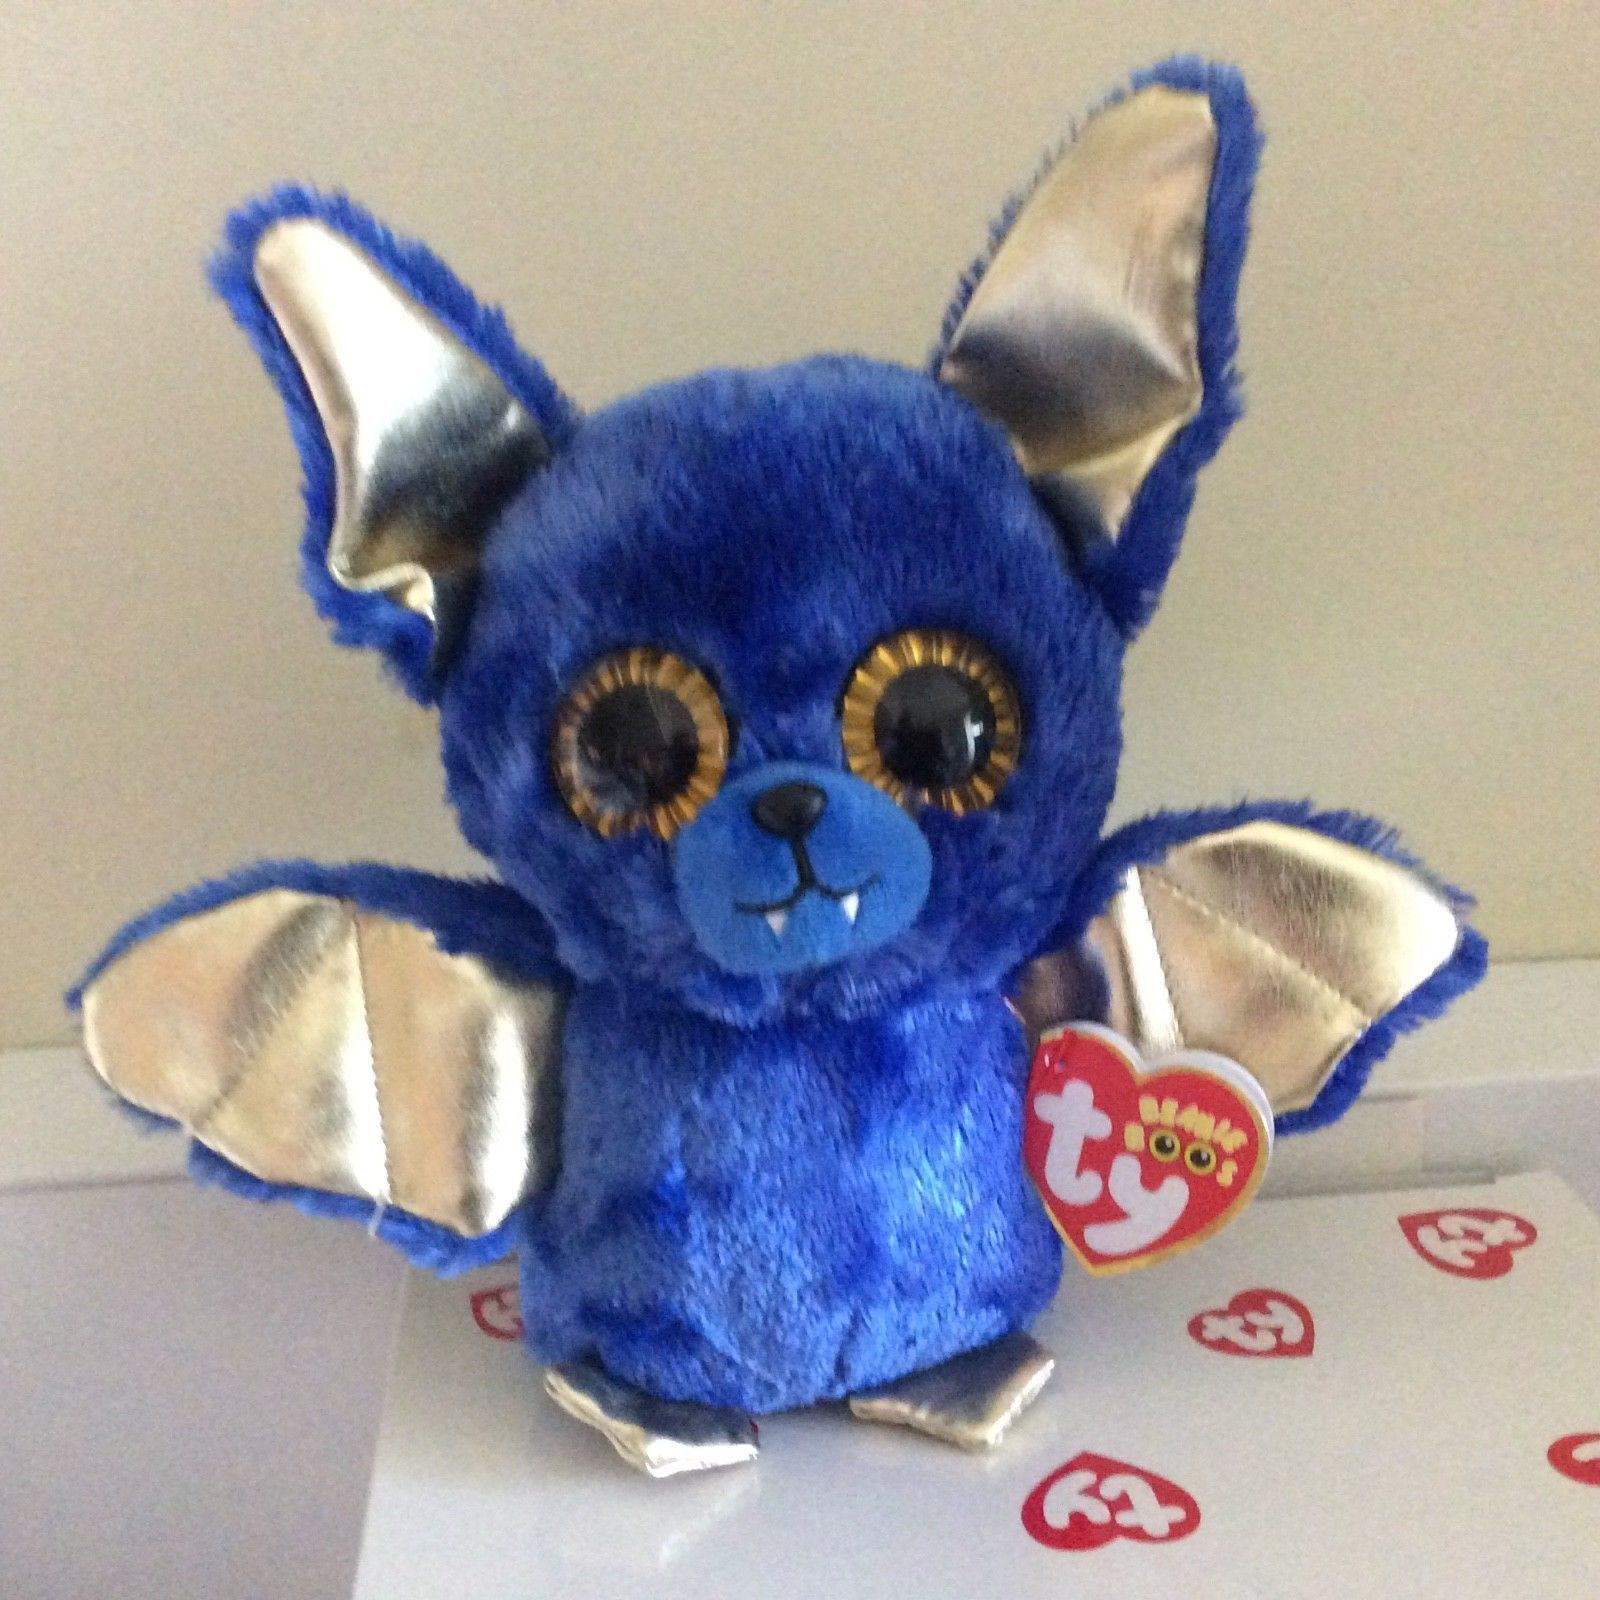 a570e21112b Current 438  Ty Beanie Boos Ozzy The Bat-New Walgreens Halloween Exclusive  6 Mwmts -  BUY IT NOW ONLY   11.99 on eBay!